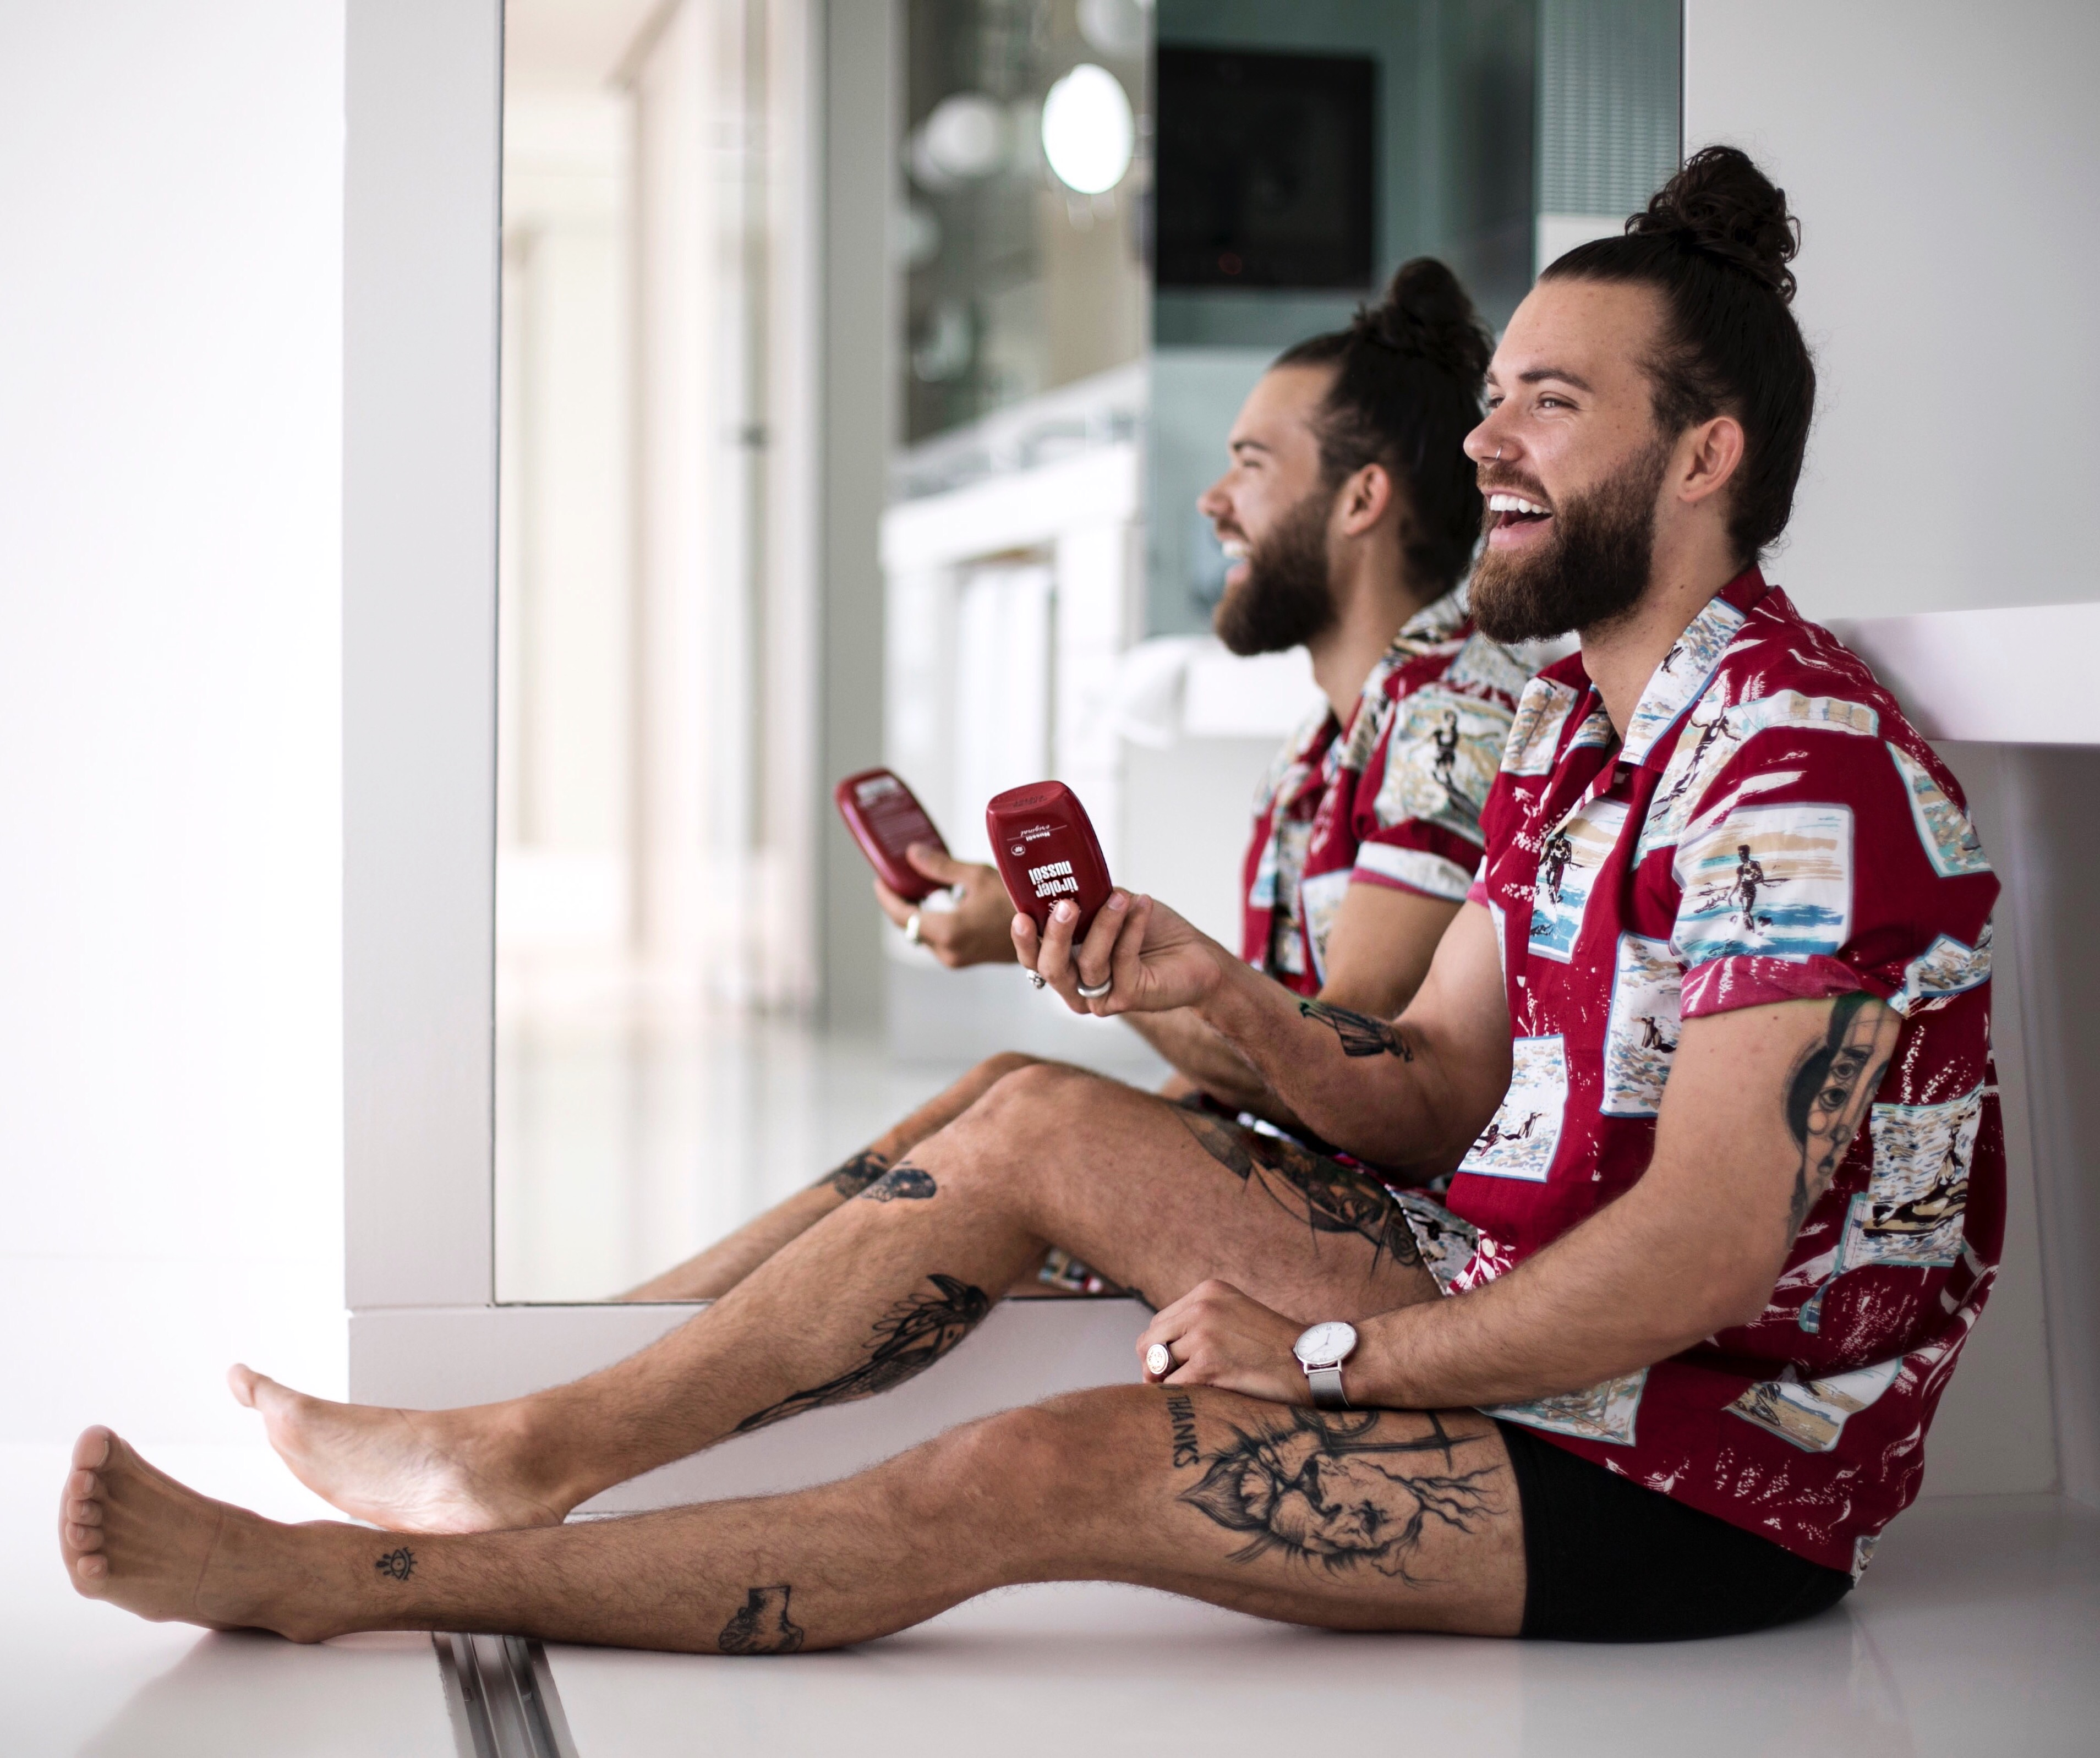 HankGe, Hank Ge, fashion blog, men blog, wien, Vienna , lifestyle Blog, menblog , Vienna blogger, wien blog, lifestyle blog, tattoo blog, tattoo guy, ink it, tiroler Nussöl, getreadyfortracht